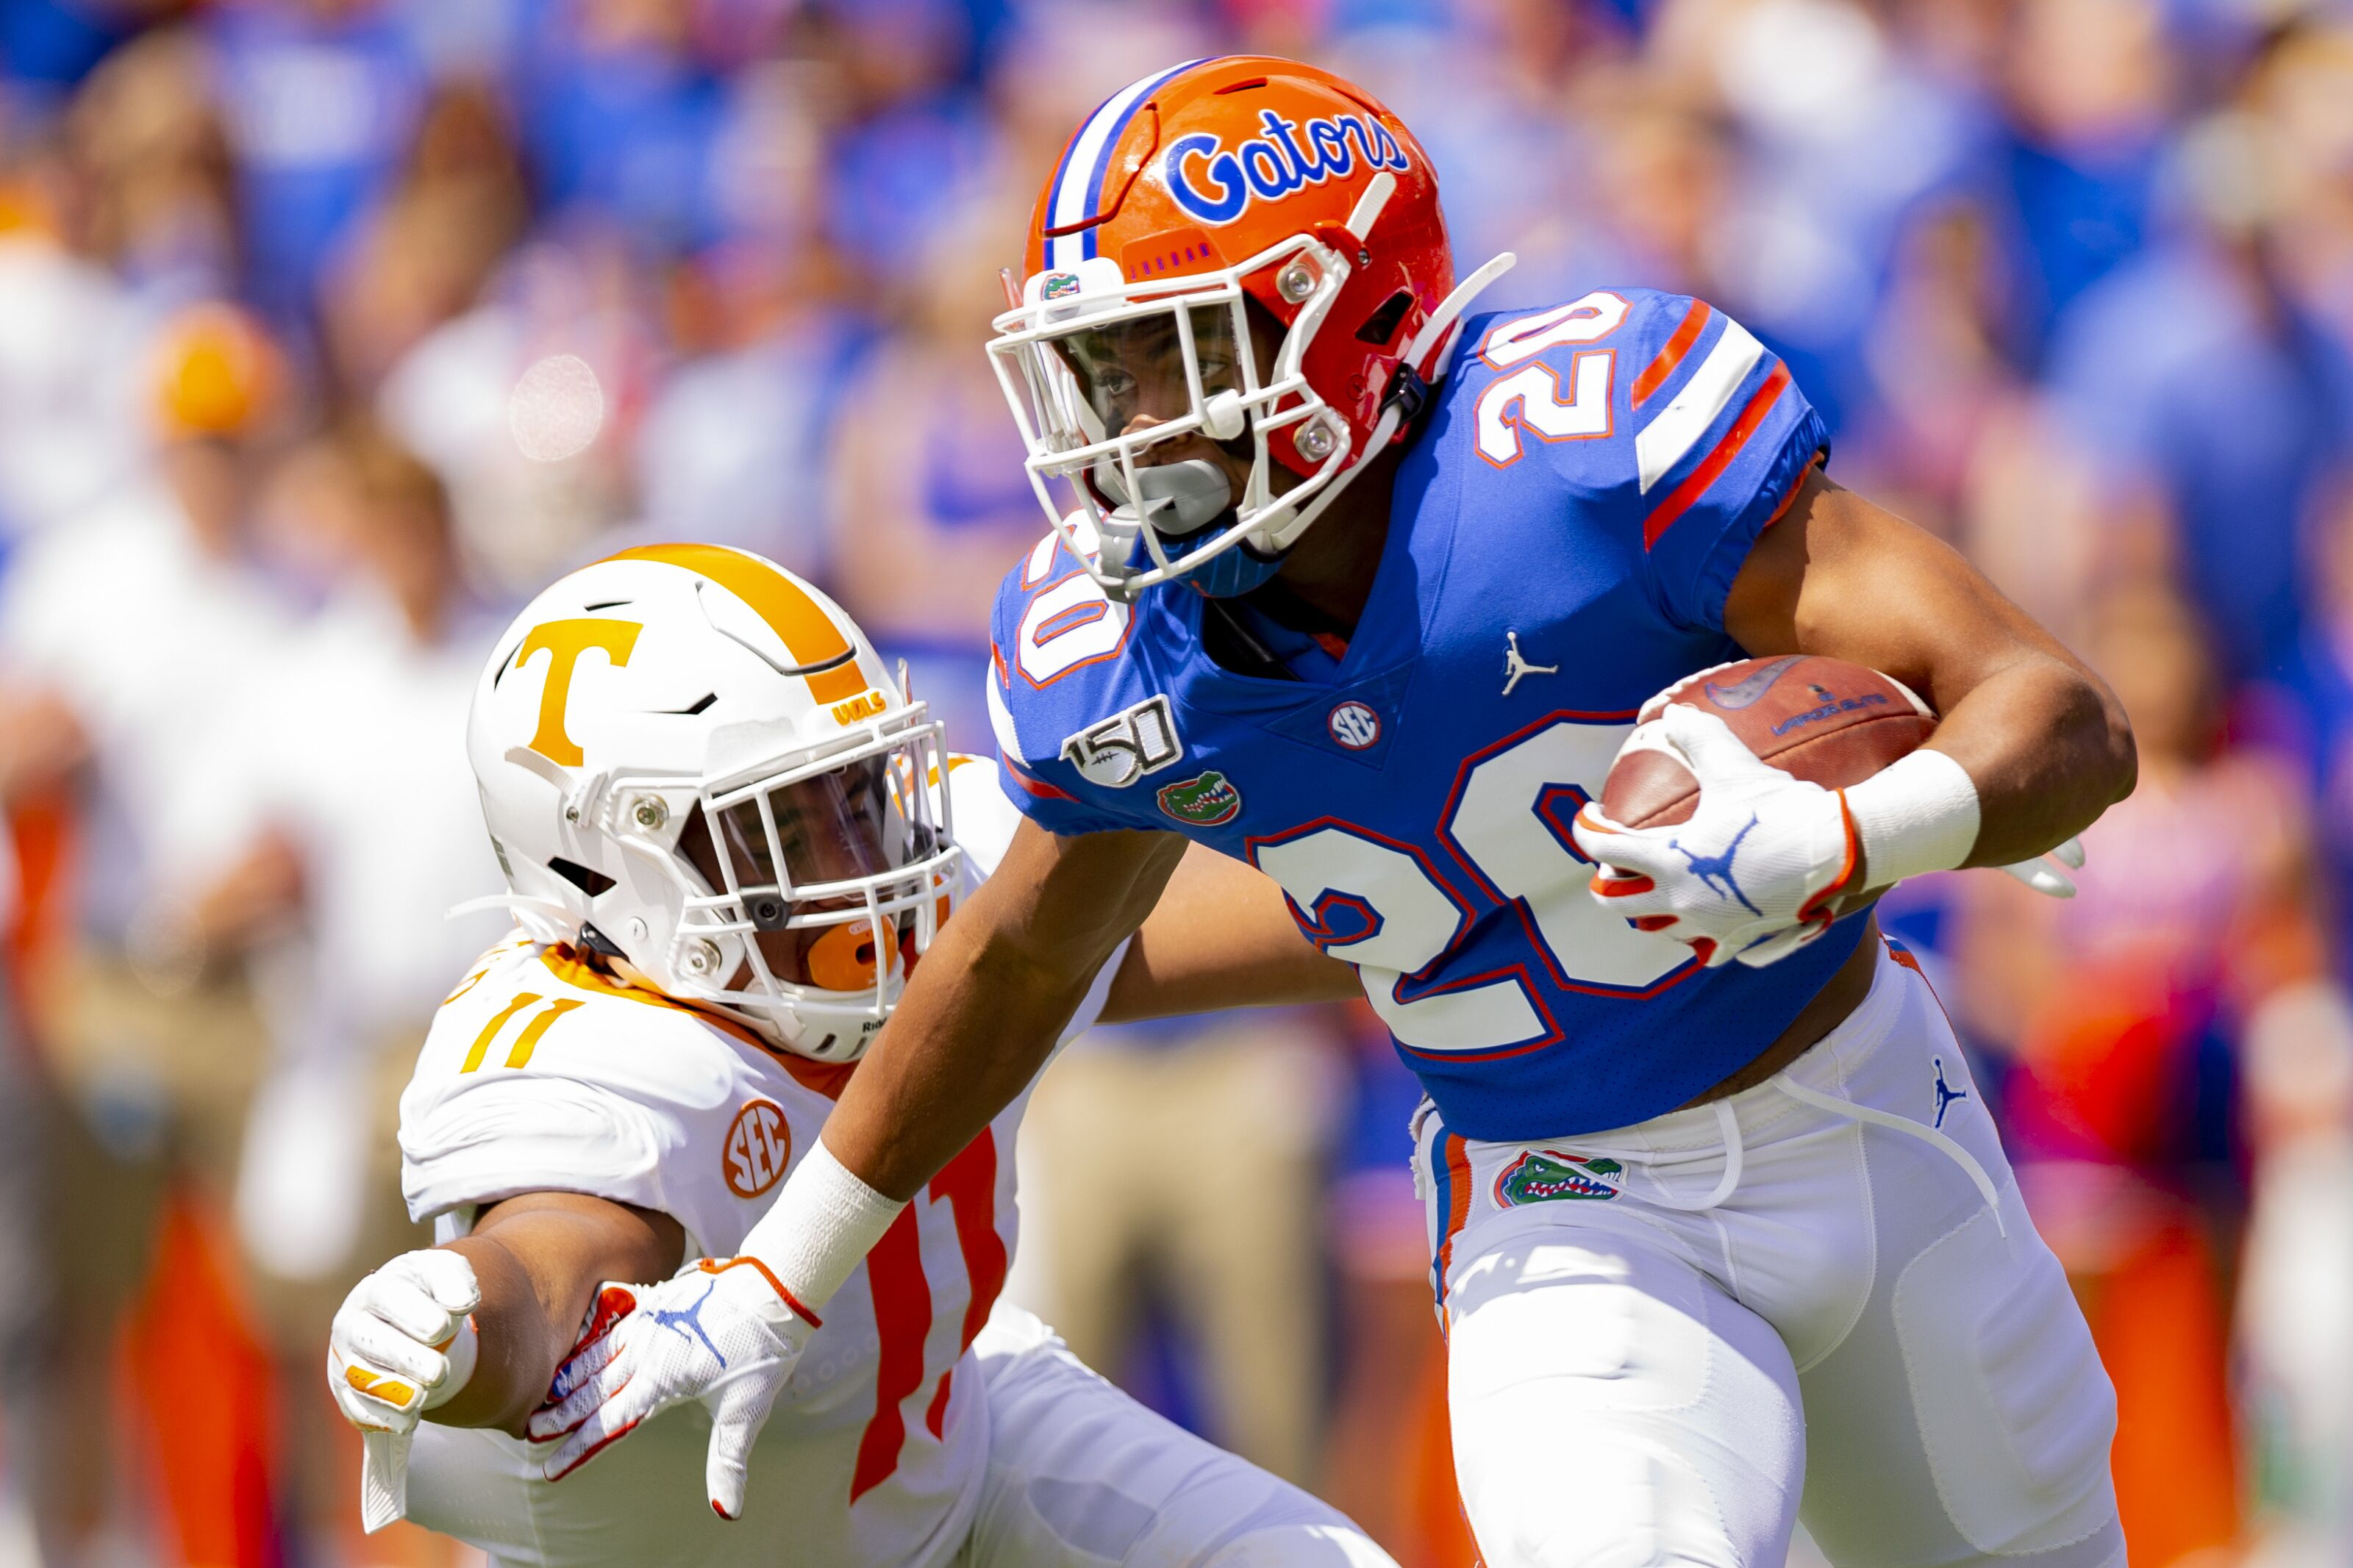 Florida Football: 3 takeaways from dominant win over Tennessee